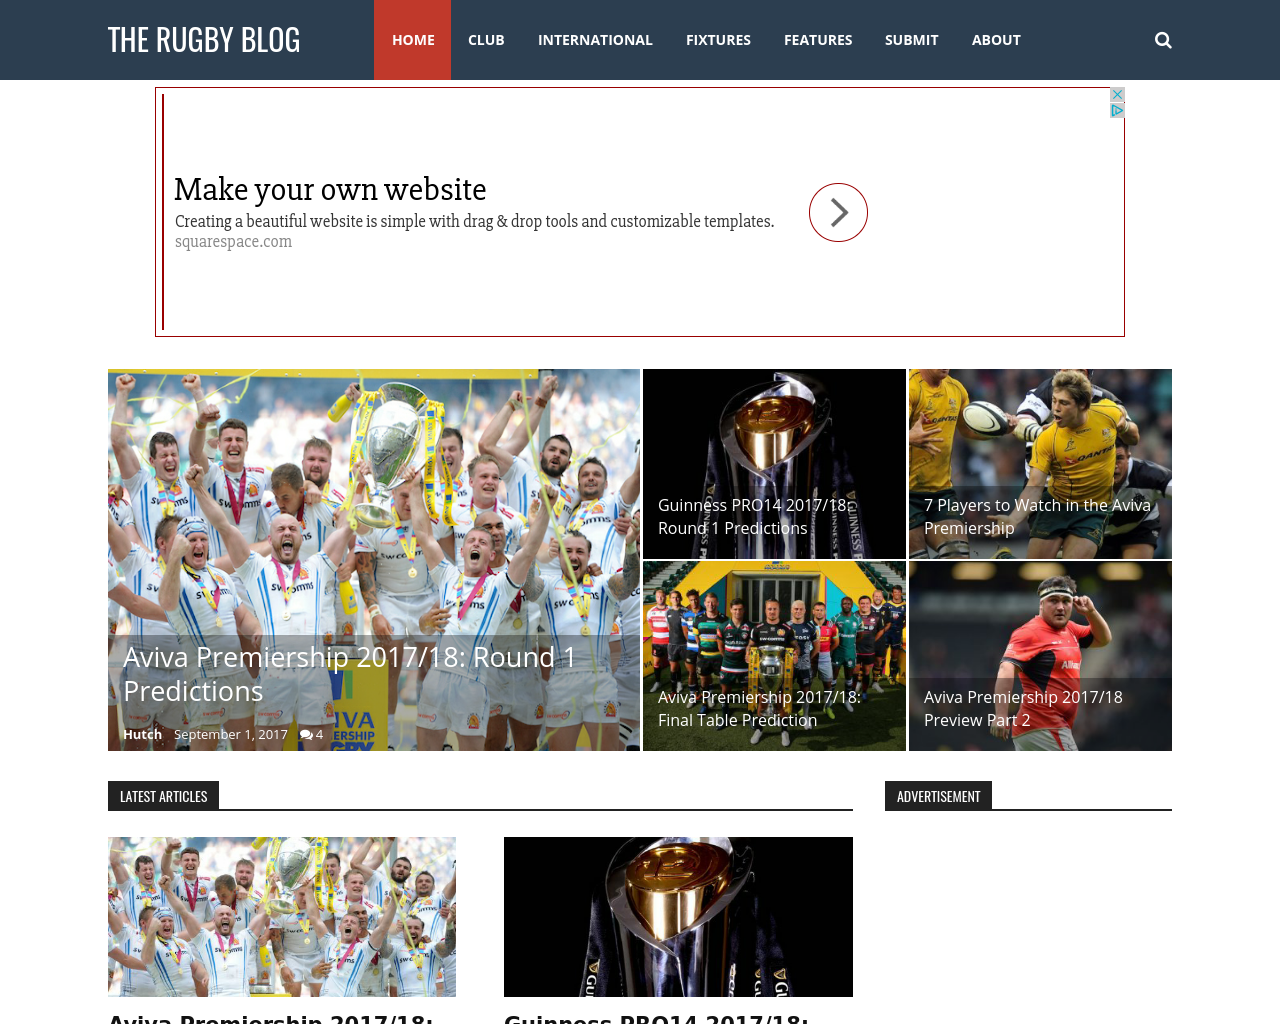 The-Rugby-Blog-Advertising-Reviews-Pricing